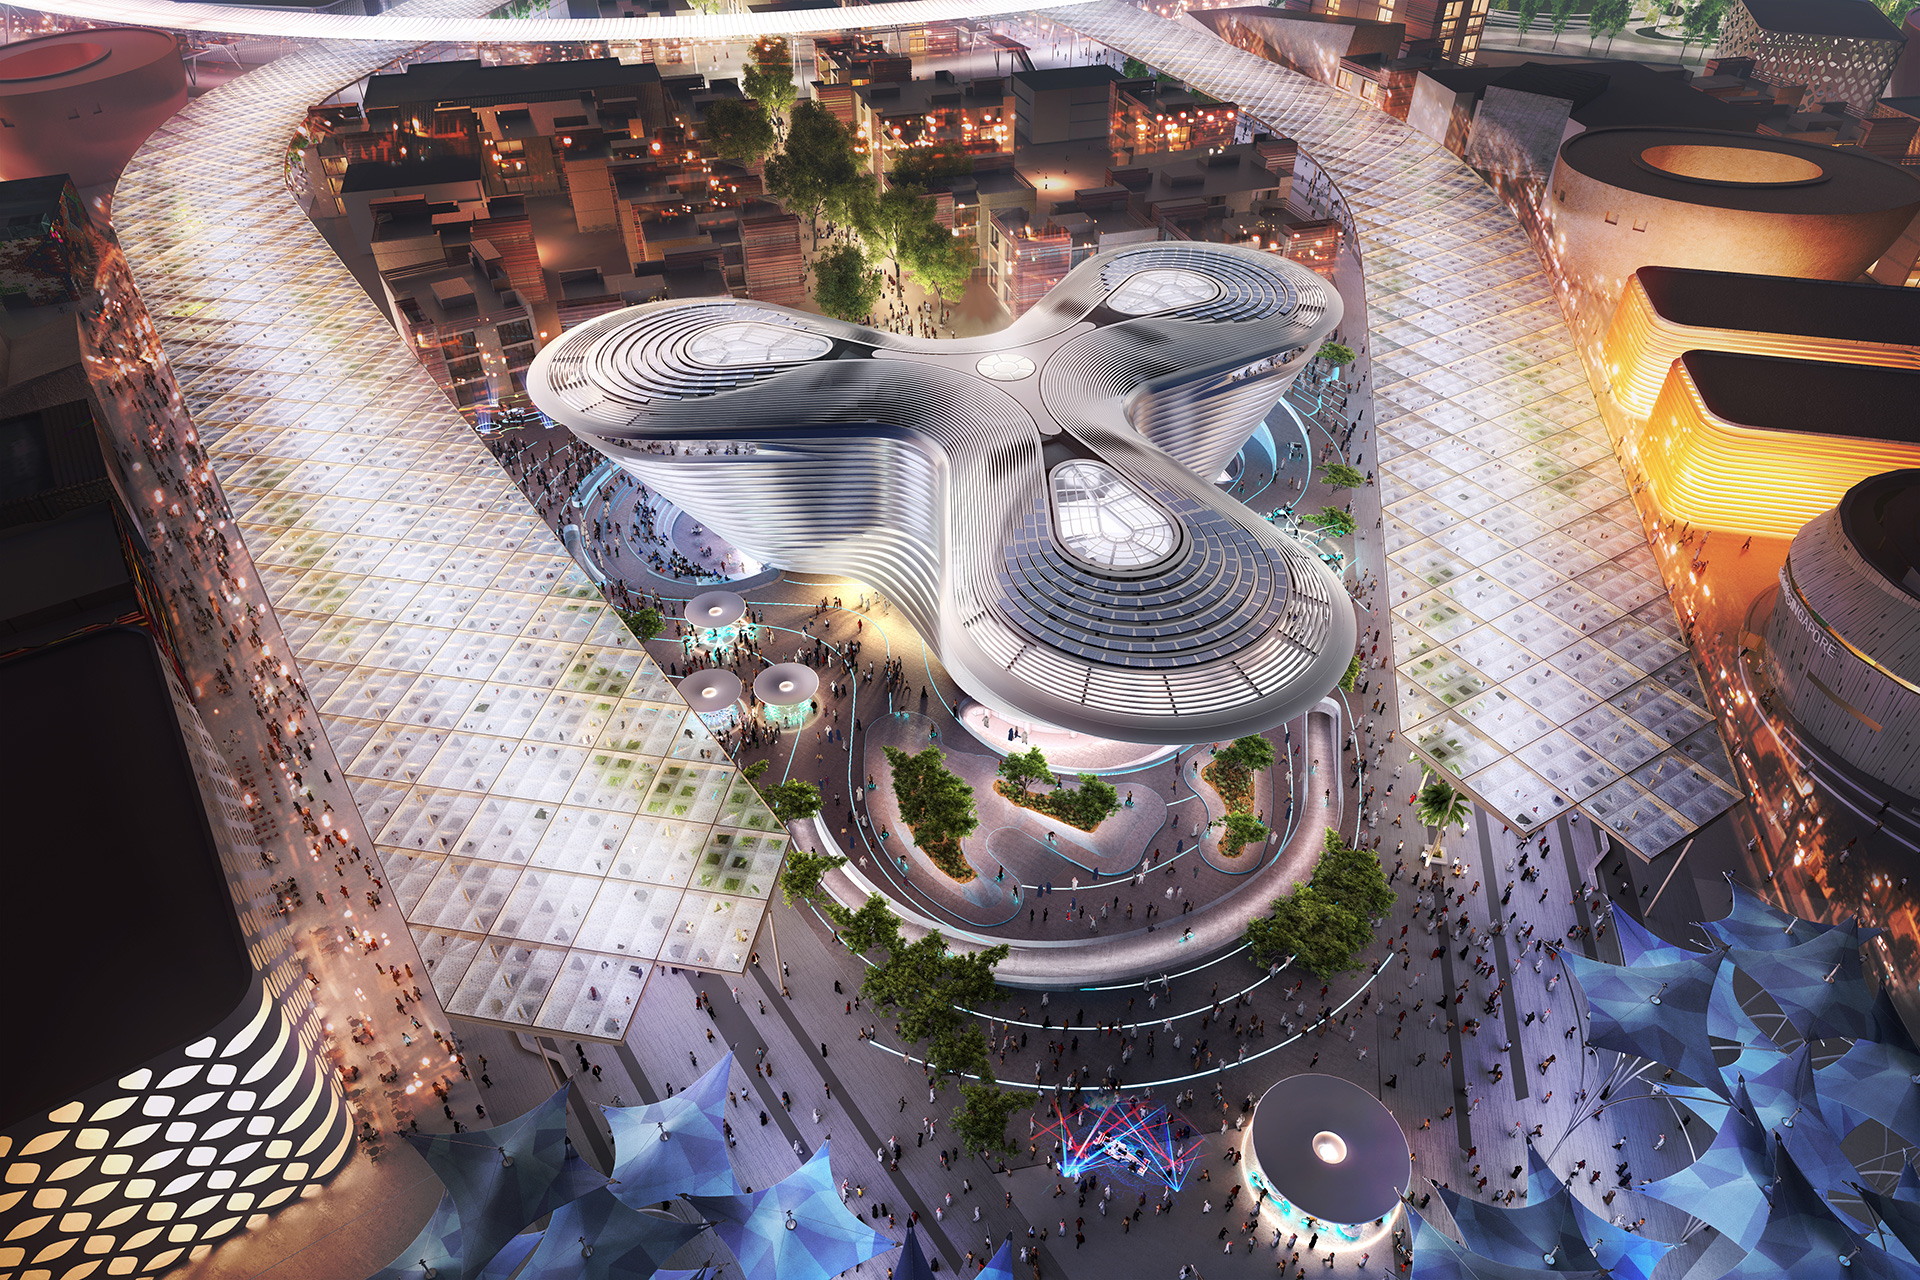 The Mobility Pavilion at the Expo 2020 Dubai | Mobility | Pavilion | Expo 2020| Dubai| STIRworld